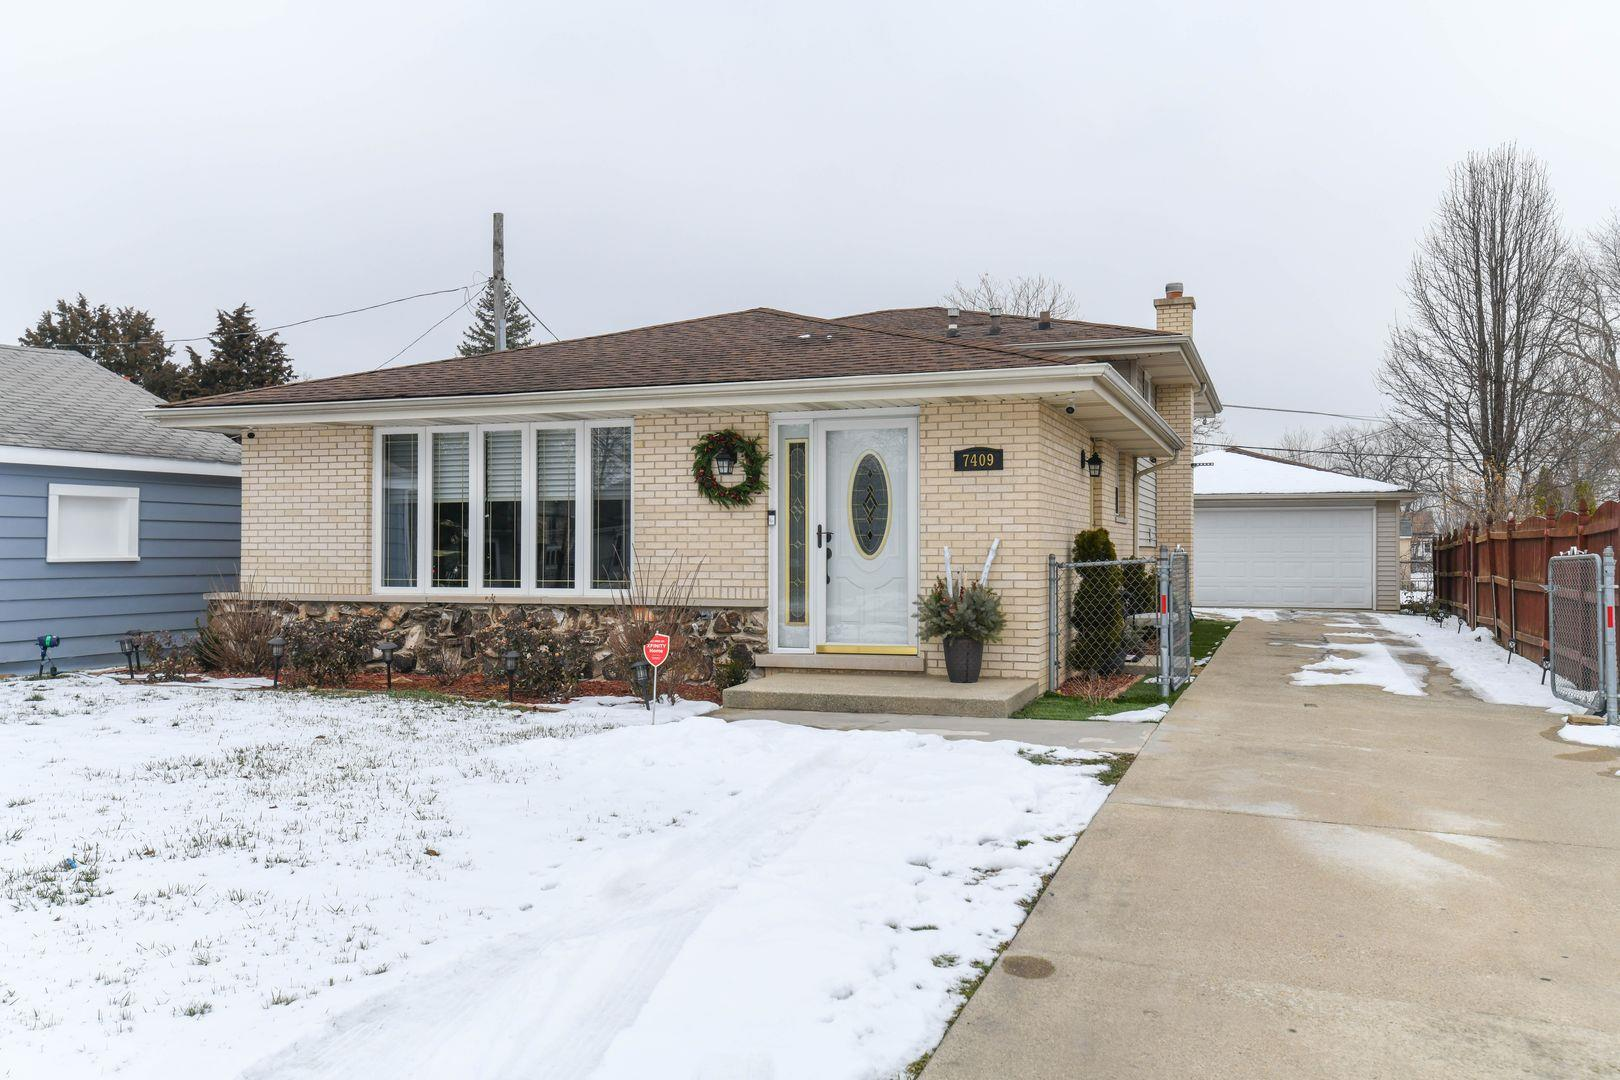 7409 S Oketo Avenue, Bridgeview, IL 60455 - #: 10964018